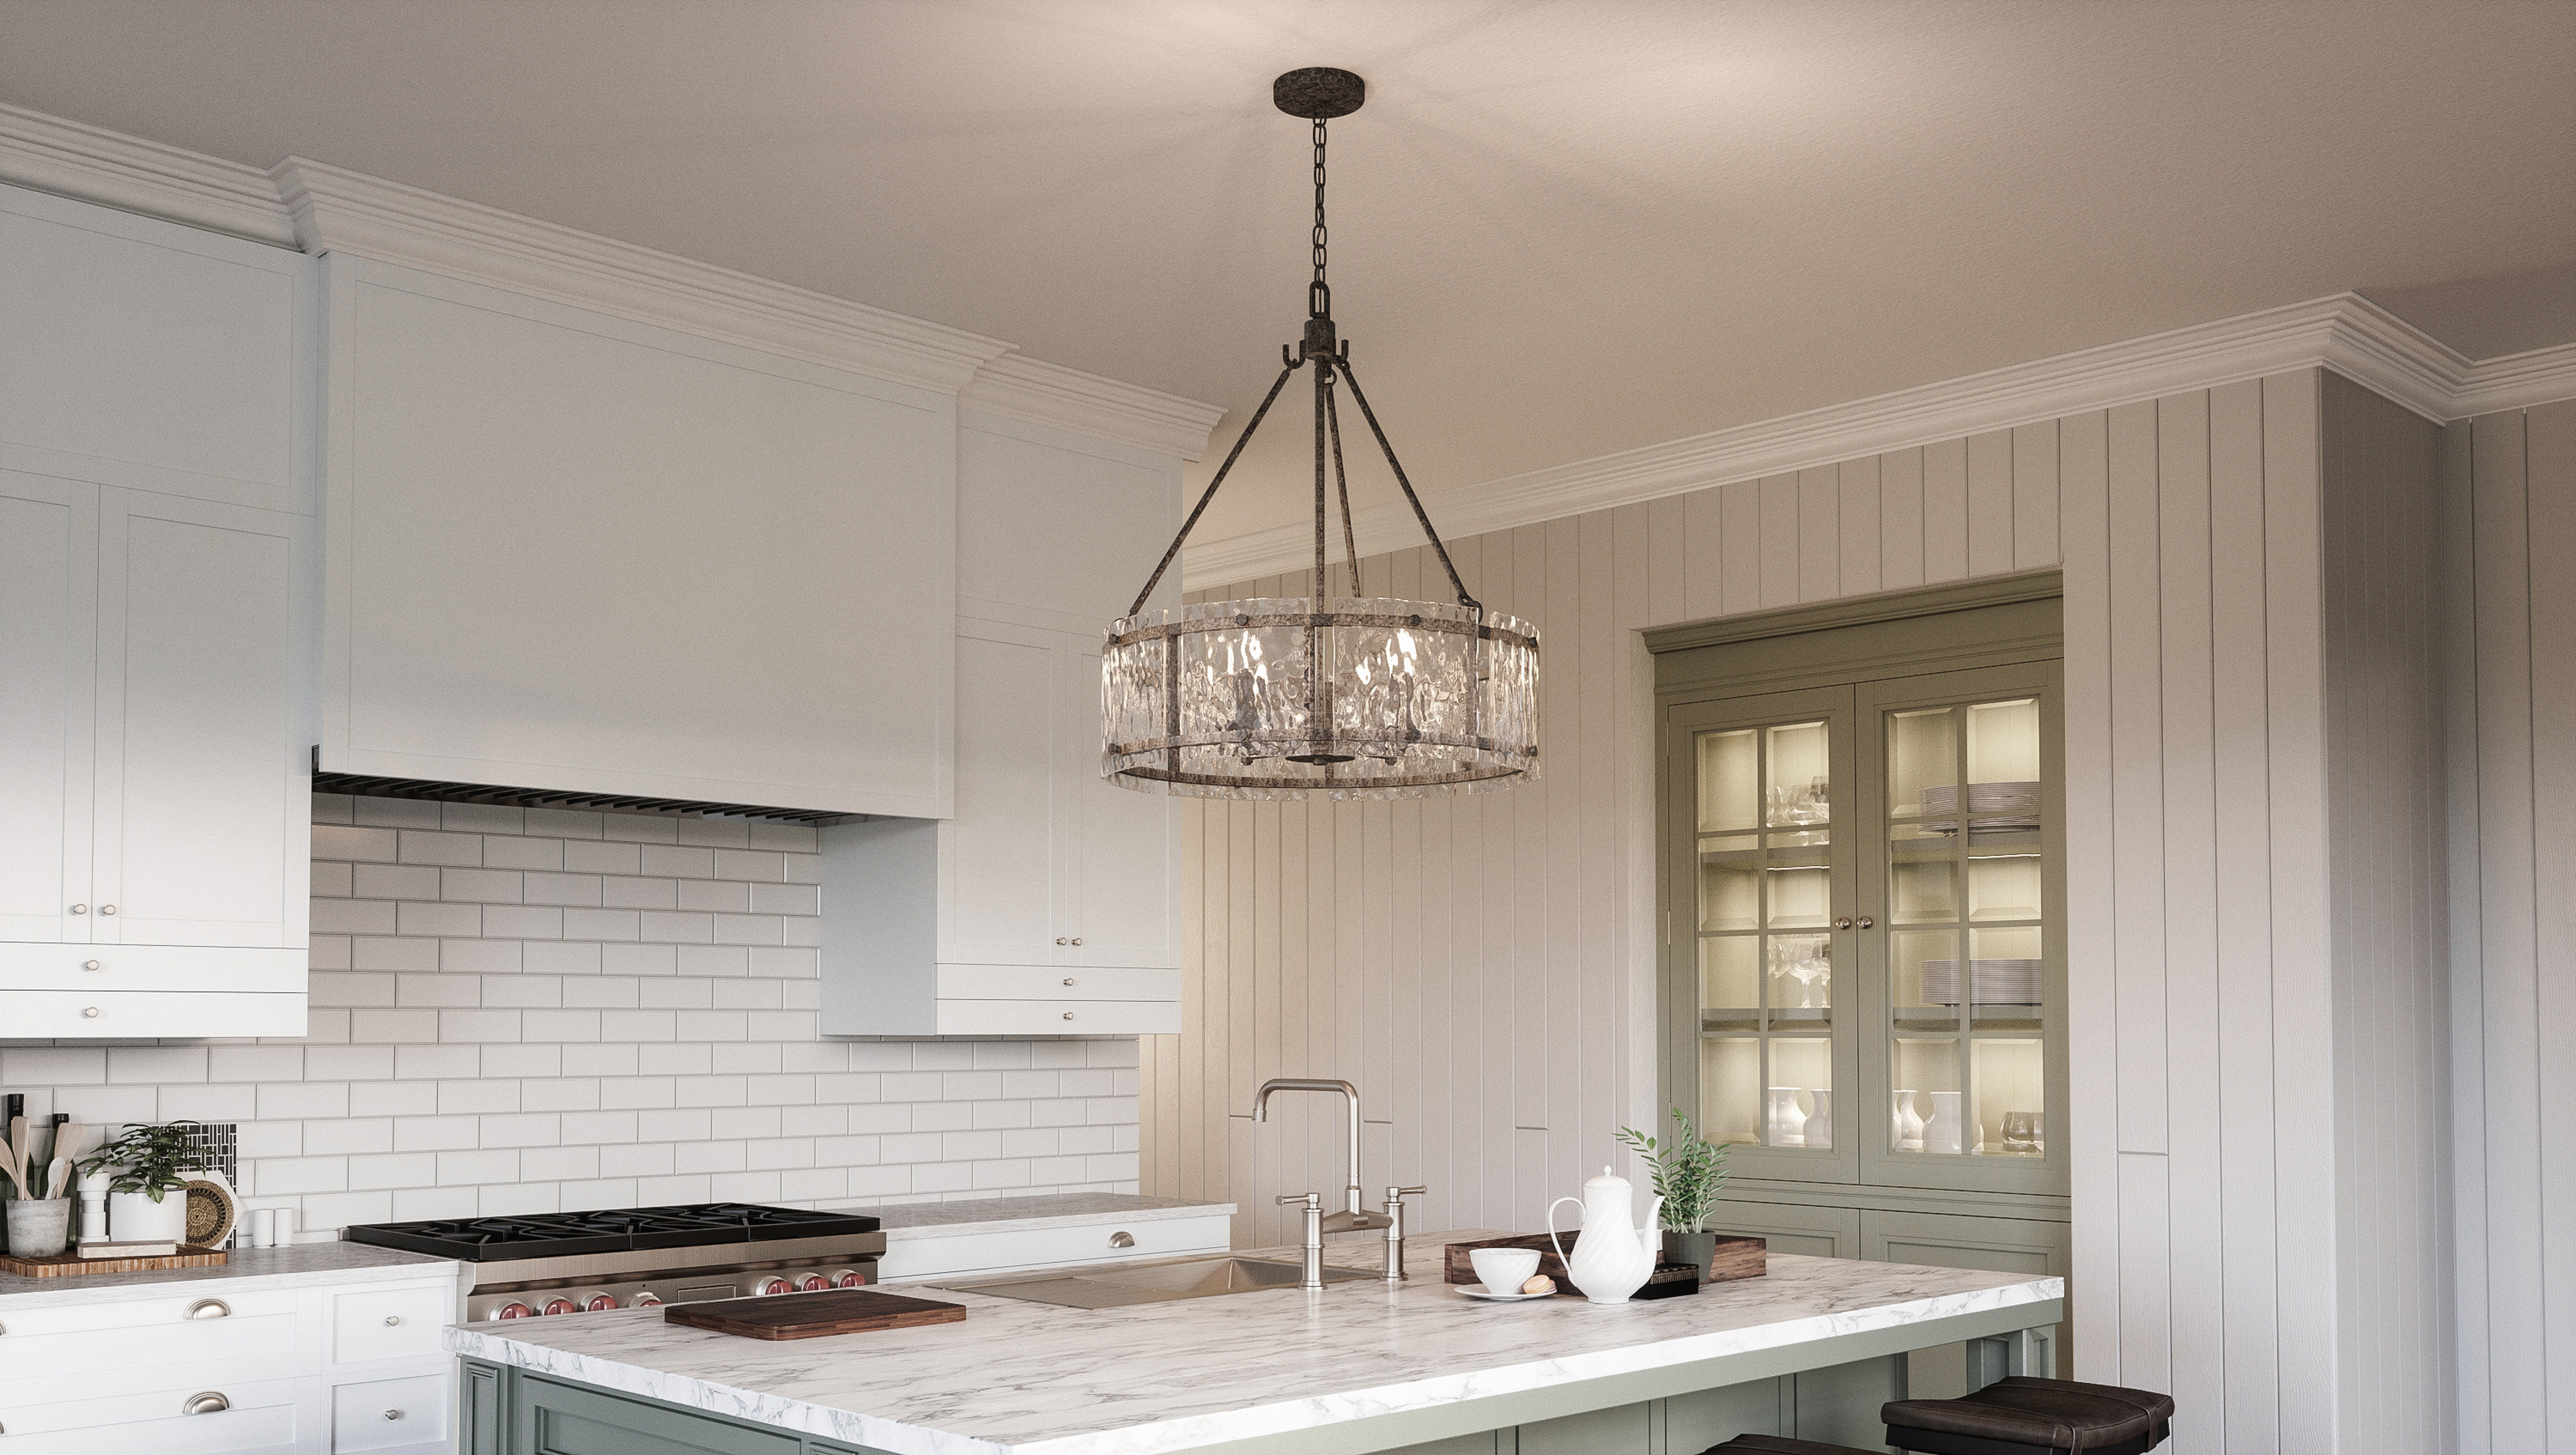 Hasse 5 Light Drum Chandelier For Best And Newest Aadhya 5 Light Drum Chandeliers (View 7 of 20)